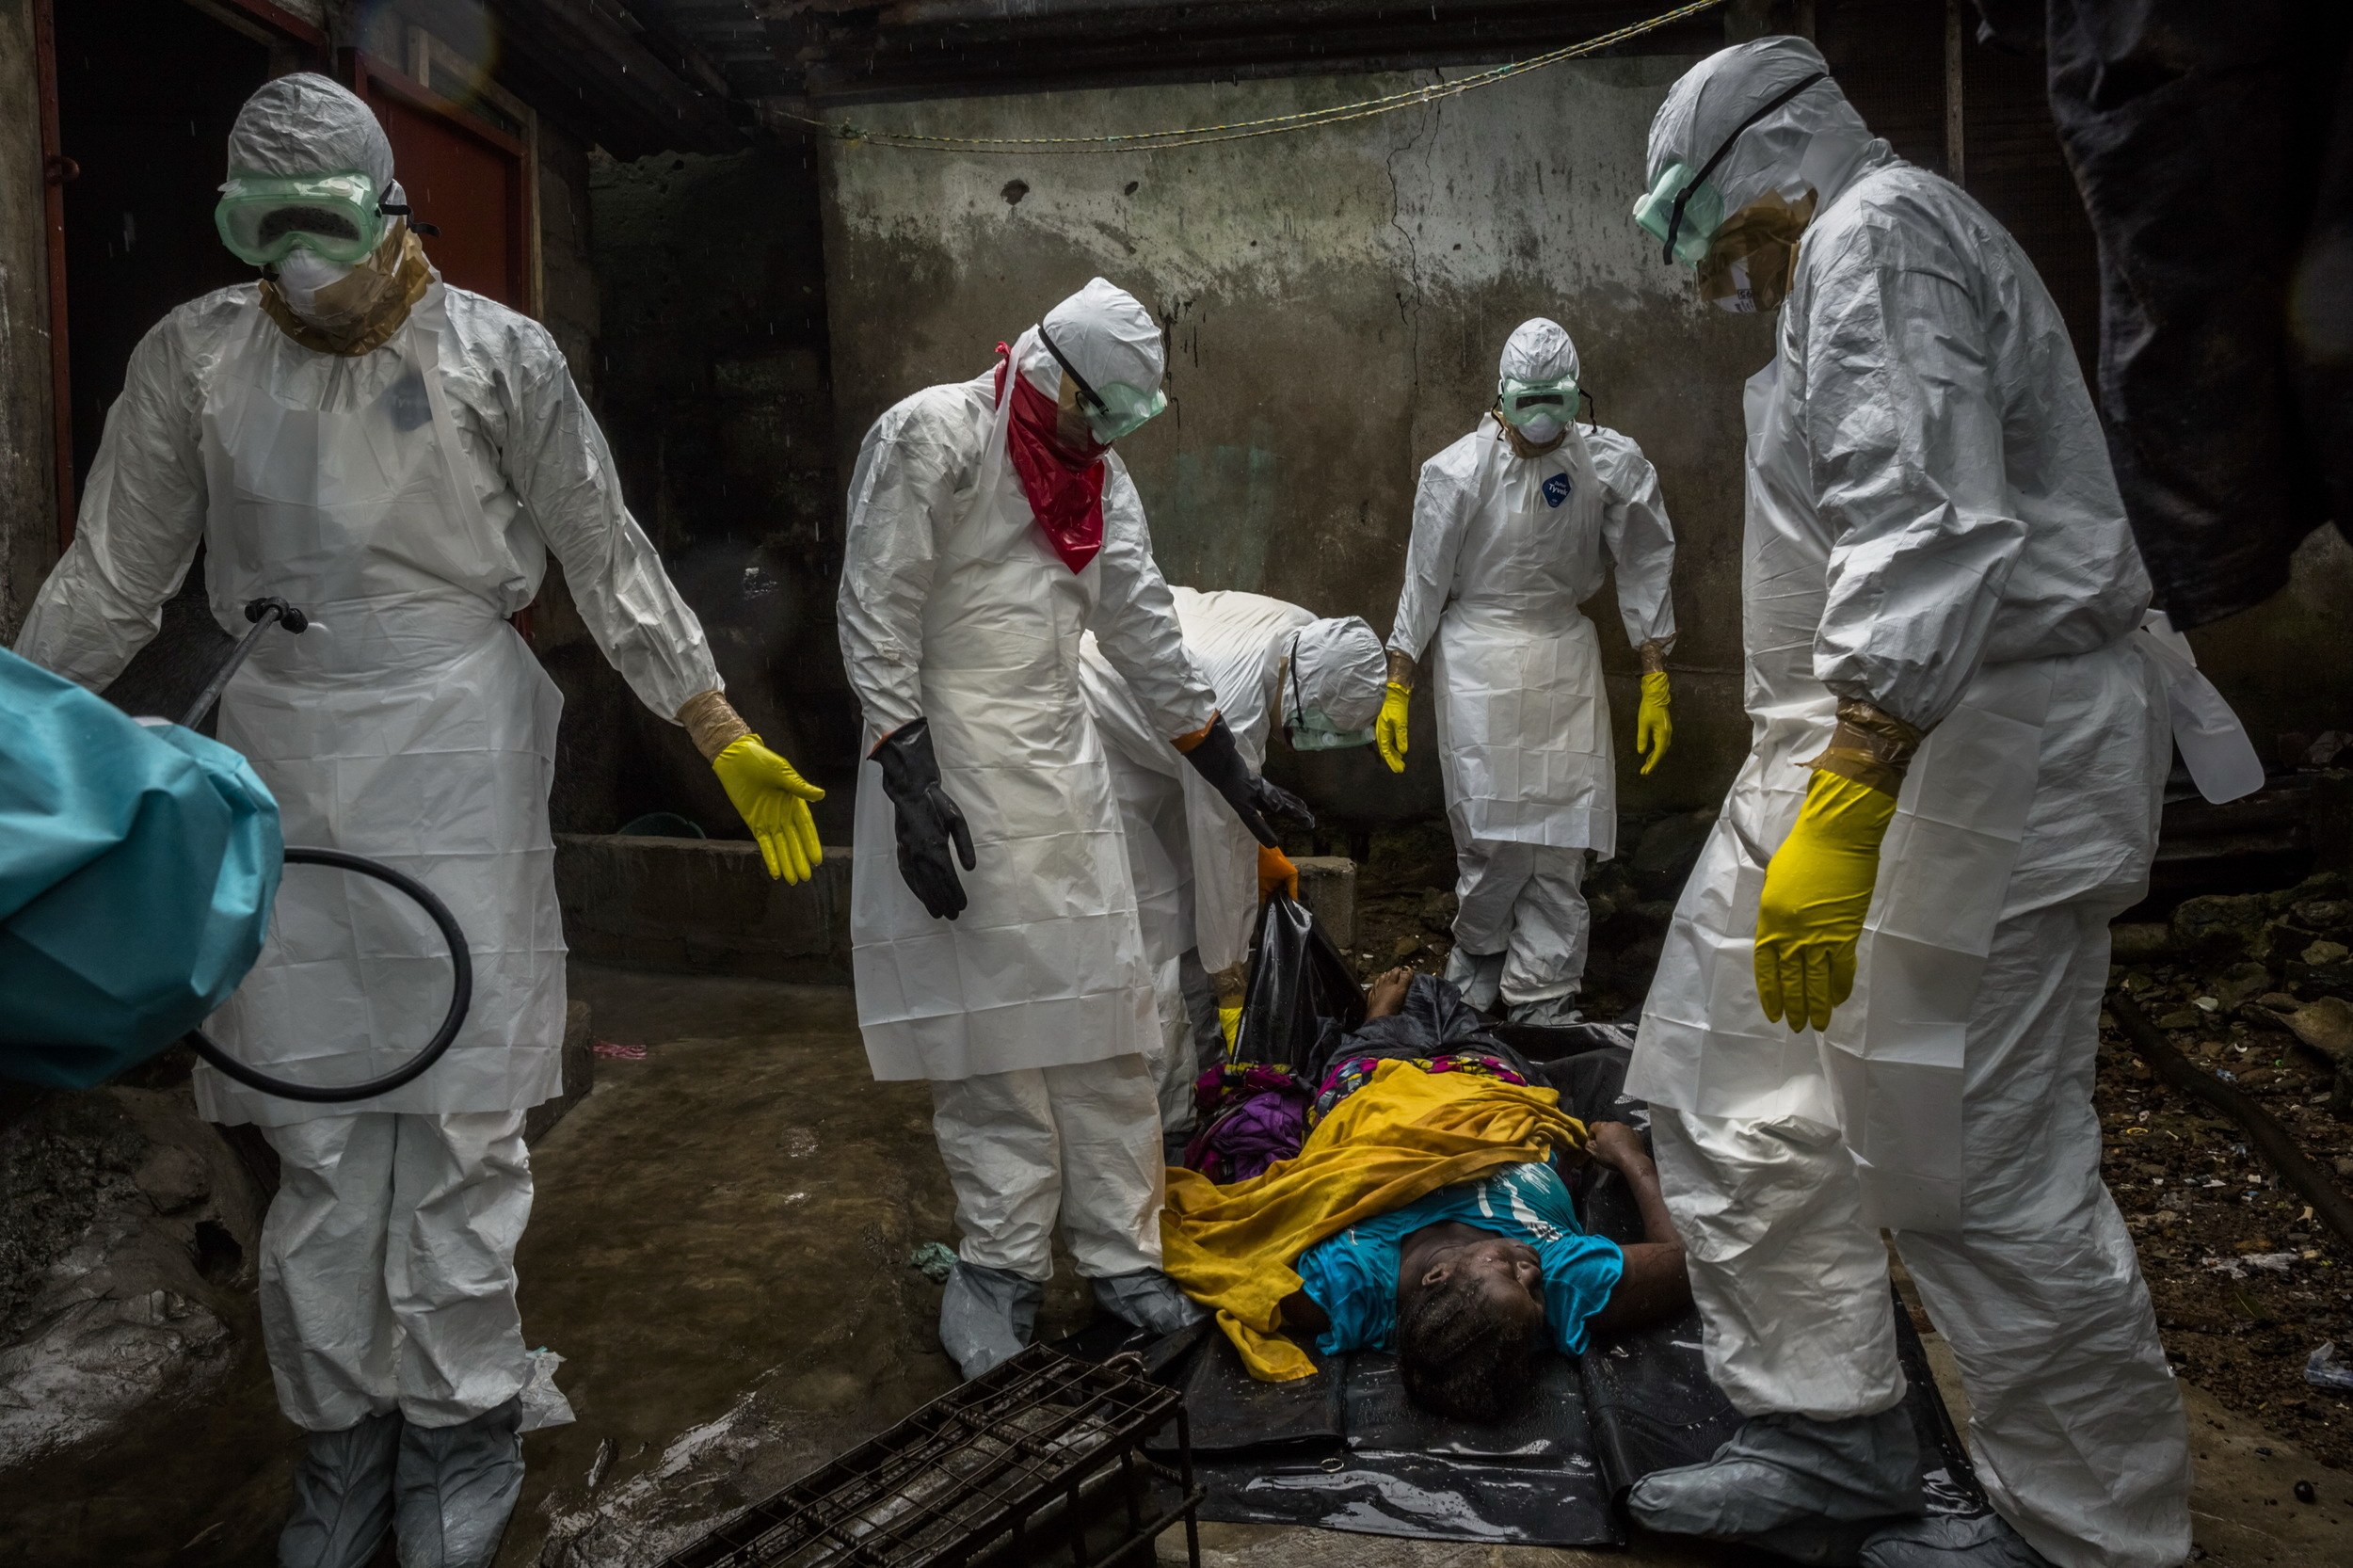 Members of a Liberian Red Cross burial team, under contract from the Liberian Ministry of Health, remove the body of a suspected Ebola victim Lorpu David, 30 in the Gurley street community in central Monrovia, Liberia. September 18, 2014 © Daniel Berehulak for The New York Times